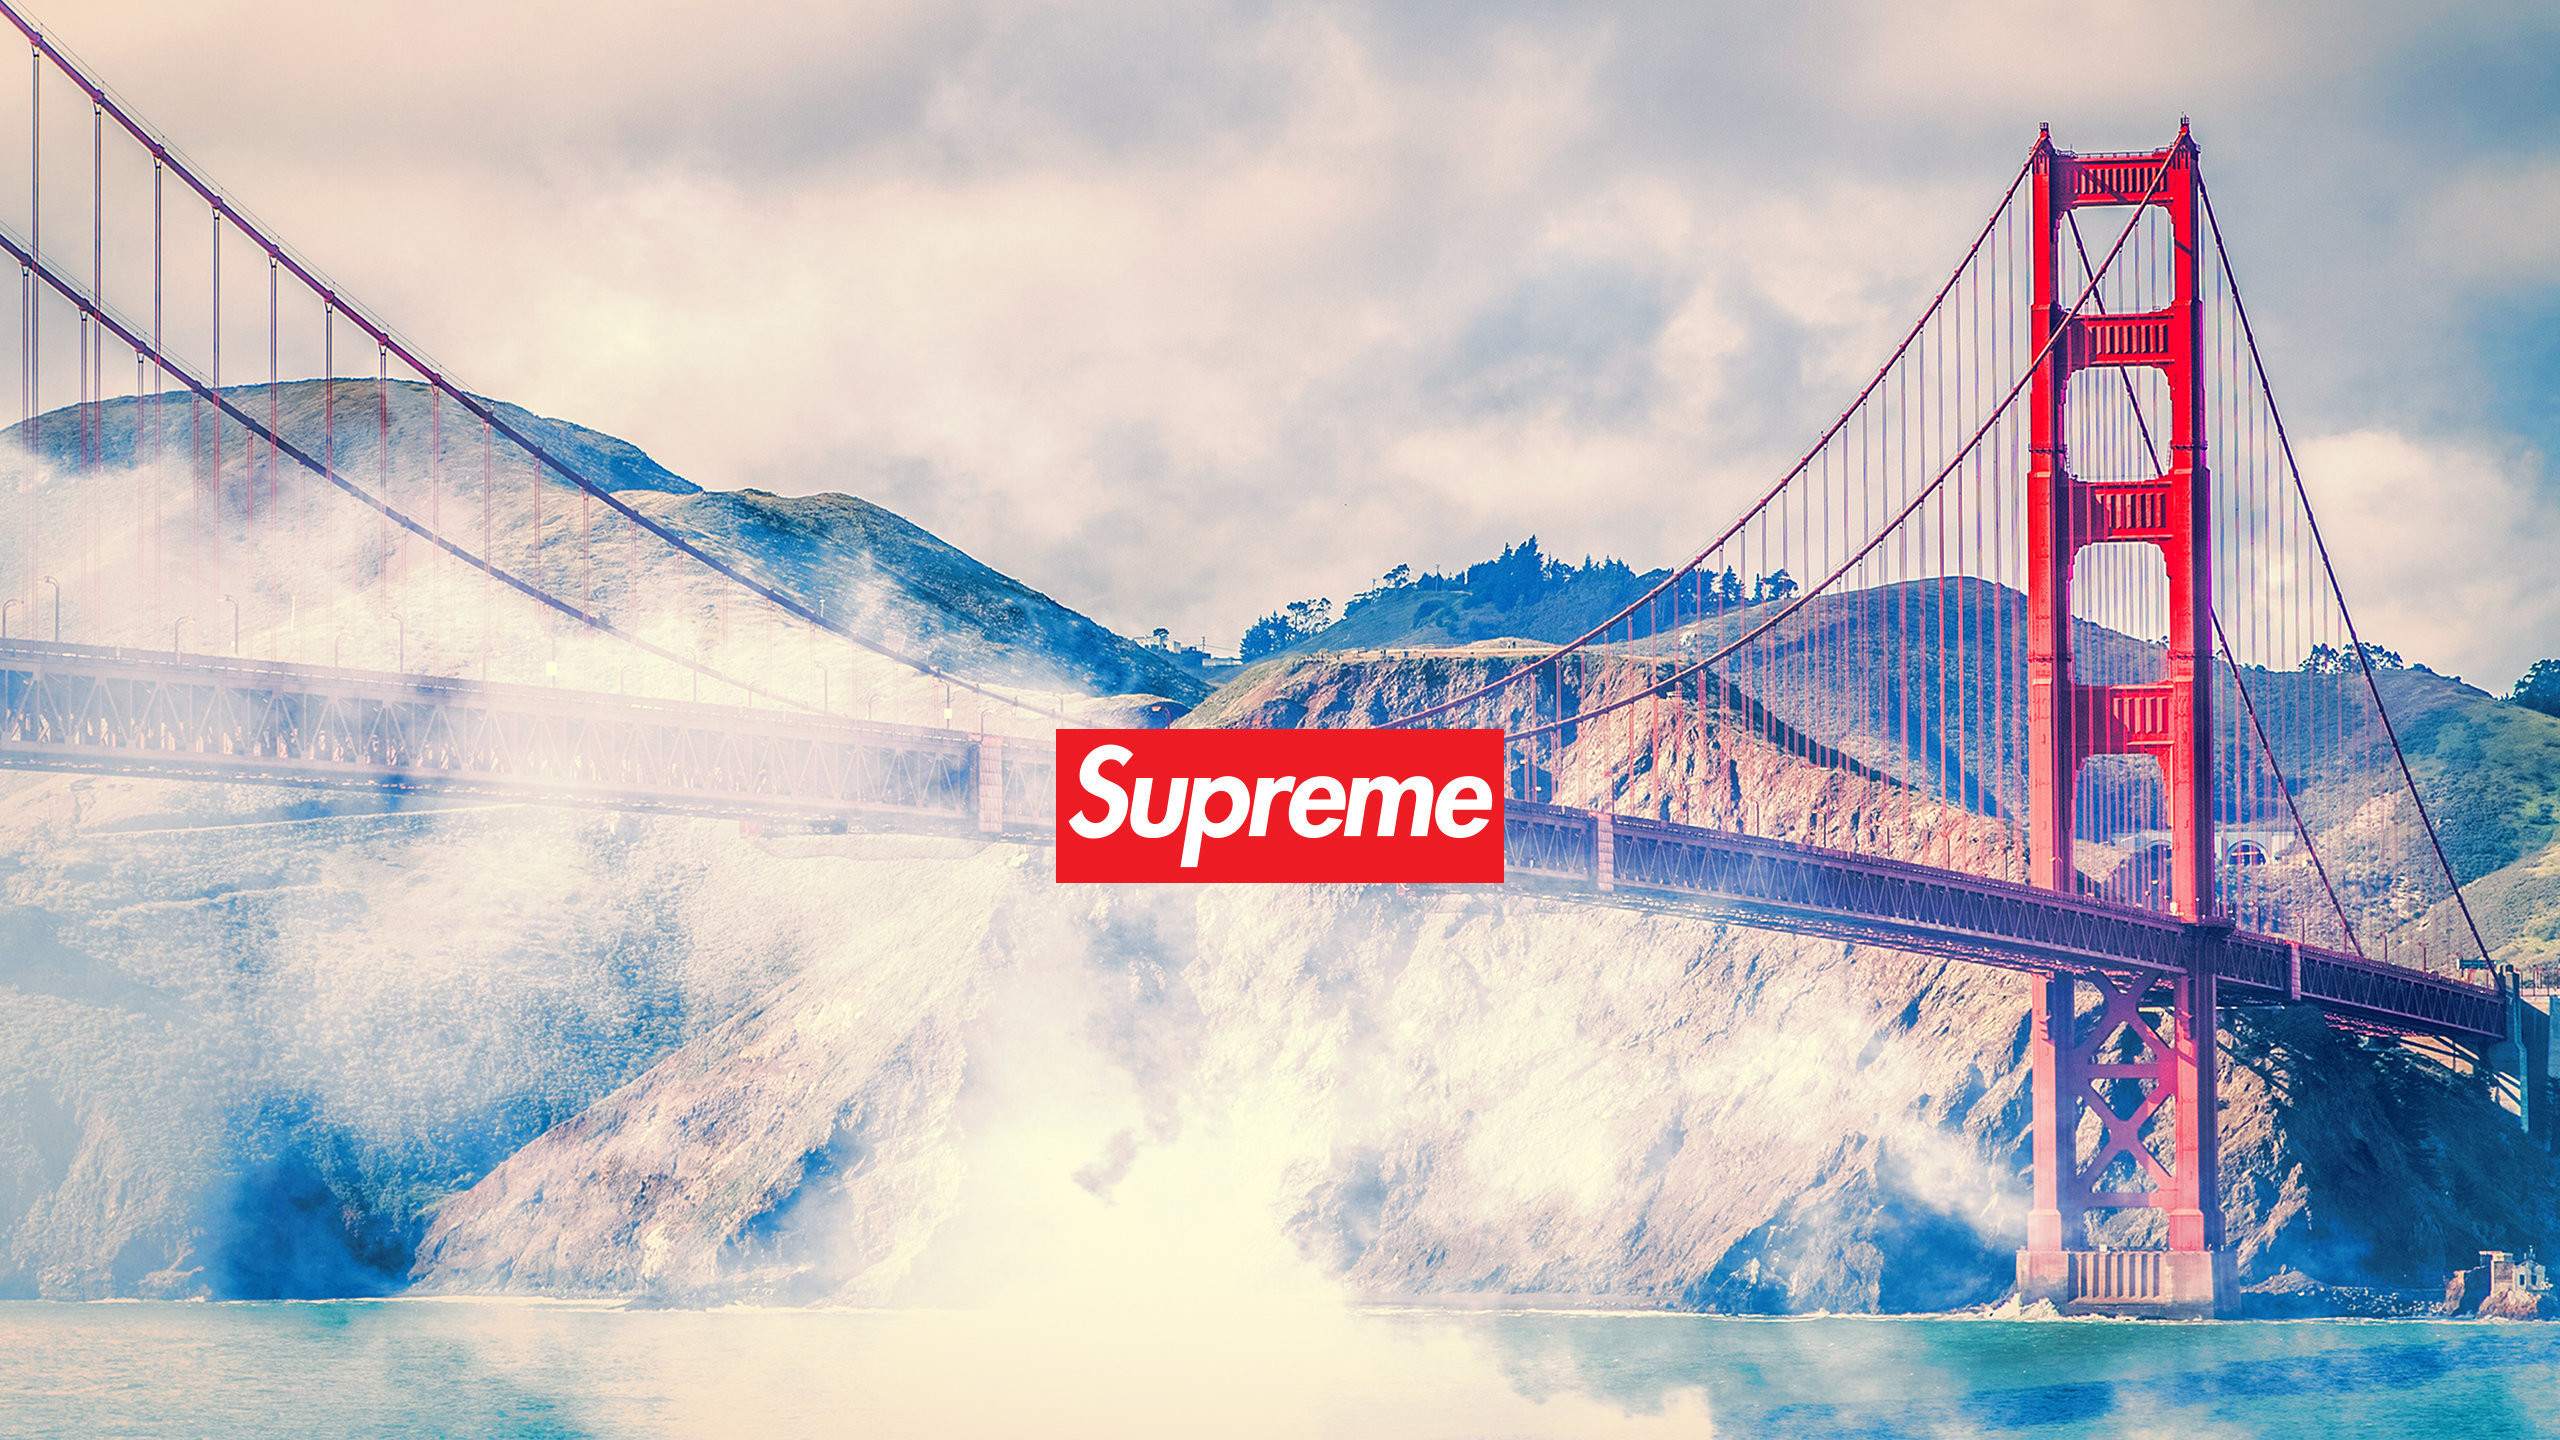 2560x1440 Supreme Wallpaper Full HD Free Download PC Desktop